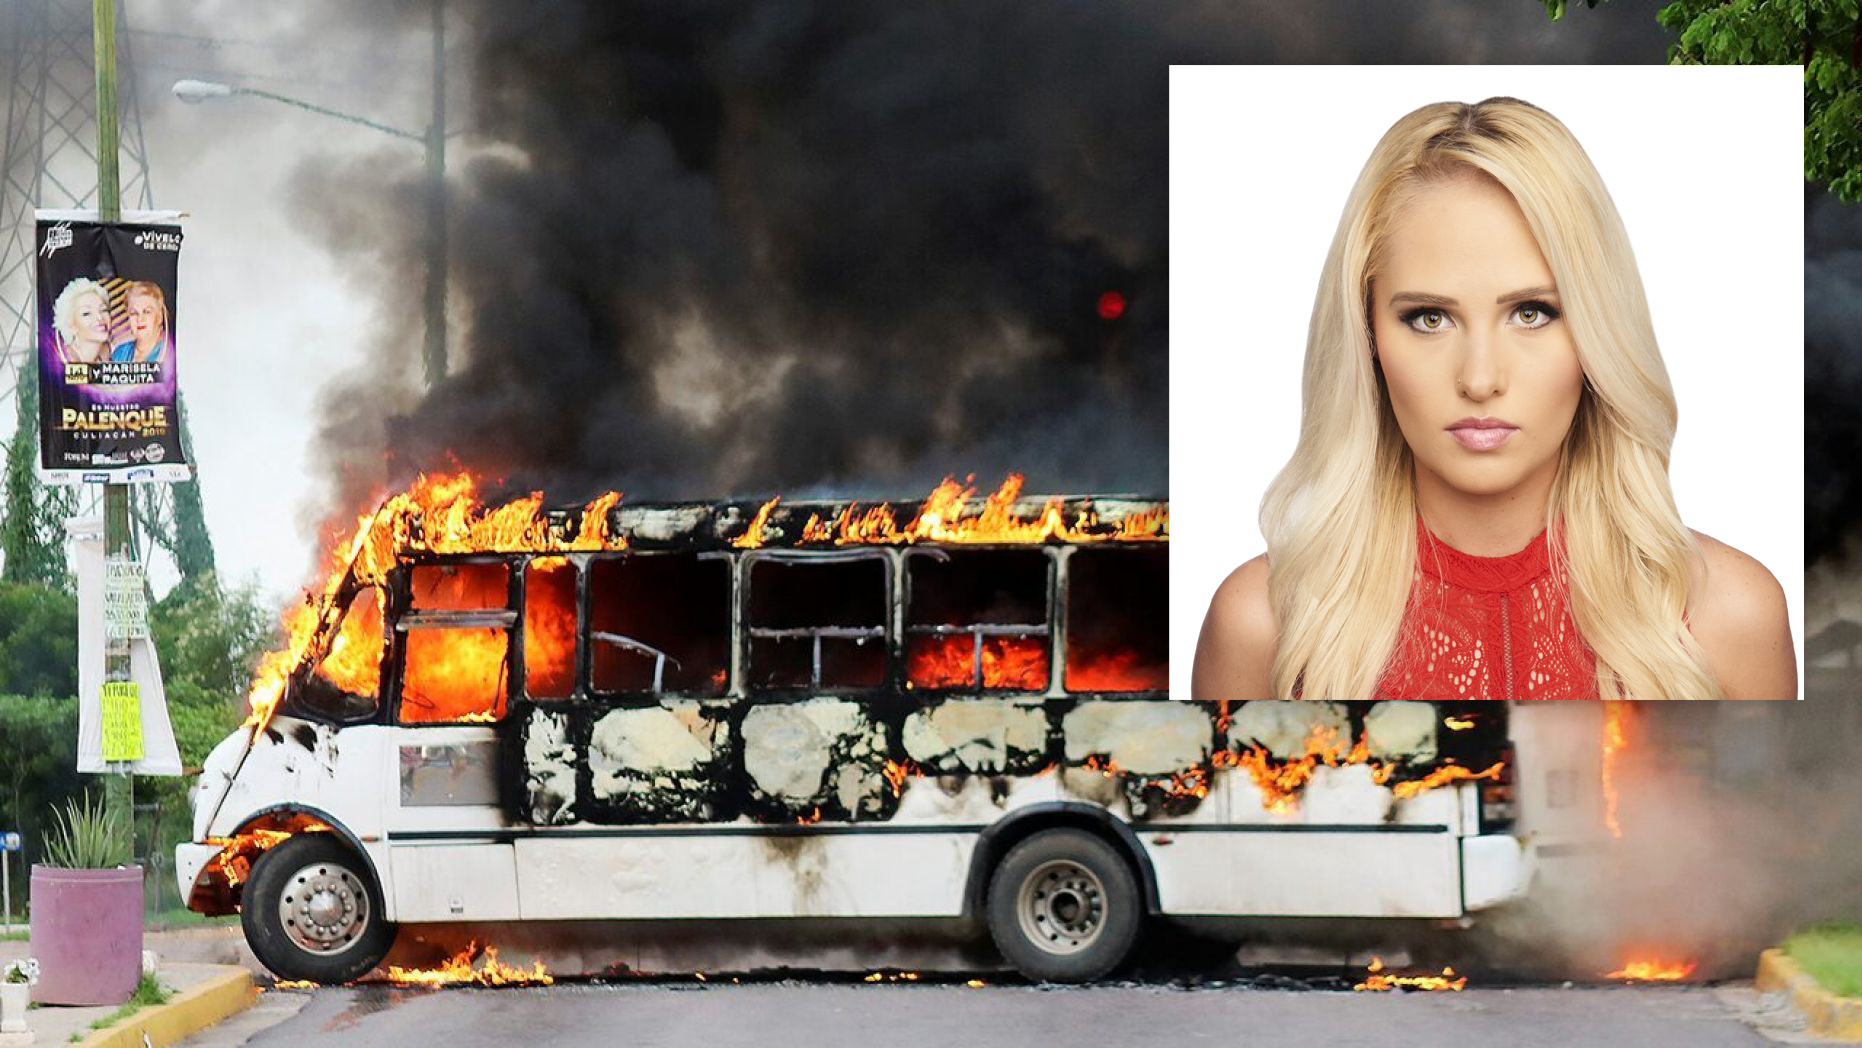 'Wake up, this could've been any of us': Tomi Lahren praises Trump's wall efforts after cartel massacre